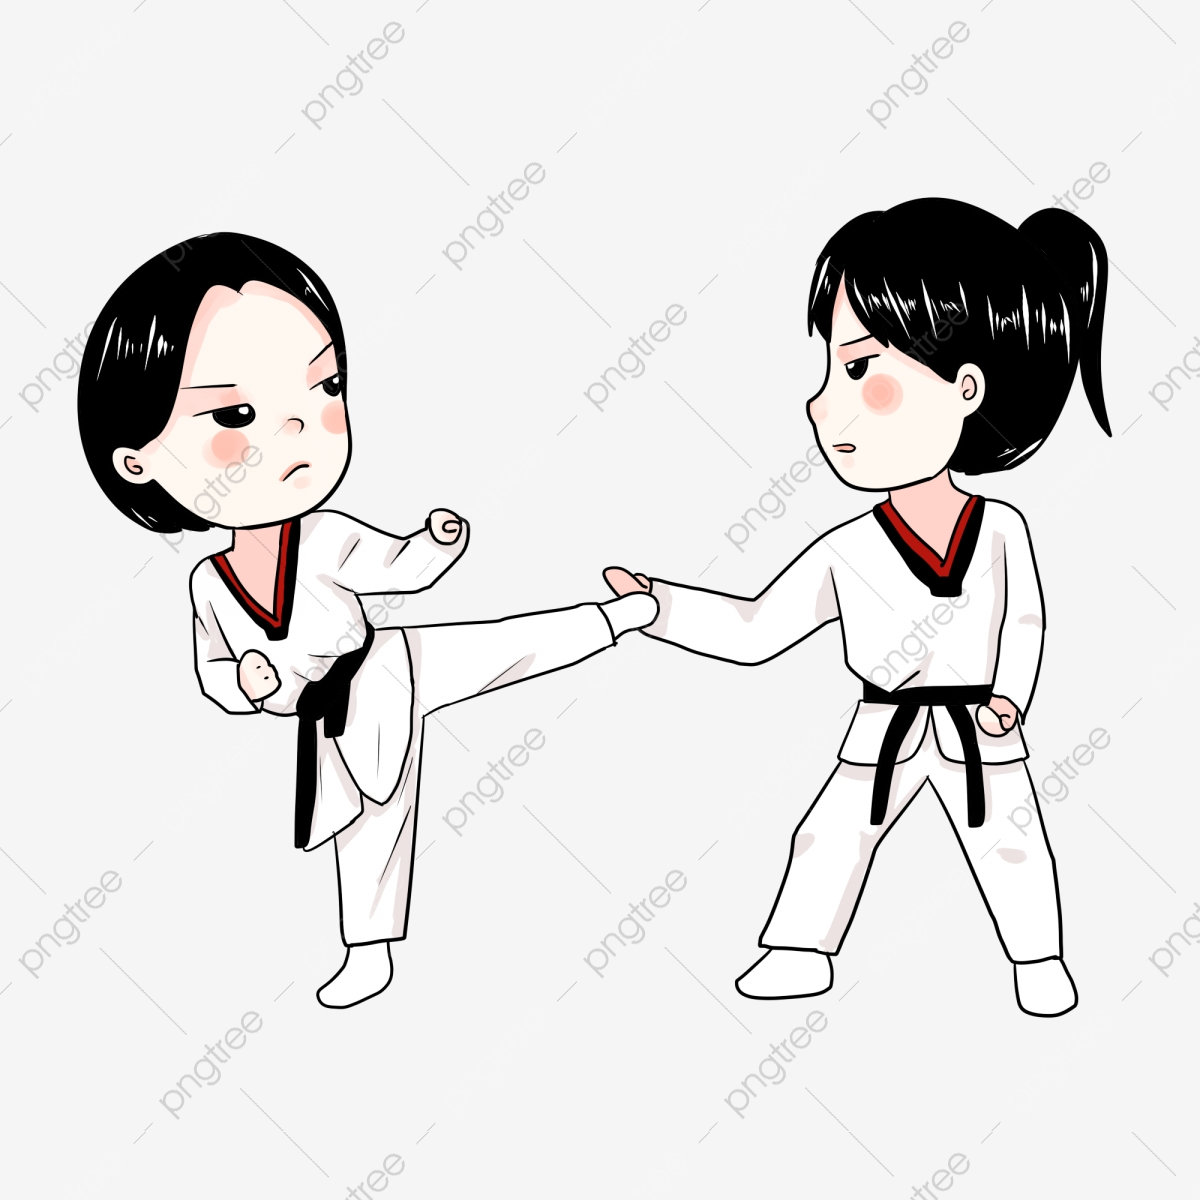 Taekwondo Hand Painted Cartoon Meng Q Version Anime Girl Girls Attack Taekwondo Training Classes Hand Painted Characters Png Transparent Clipart Image And Psd File For Free Download